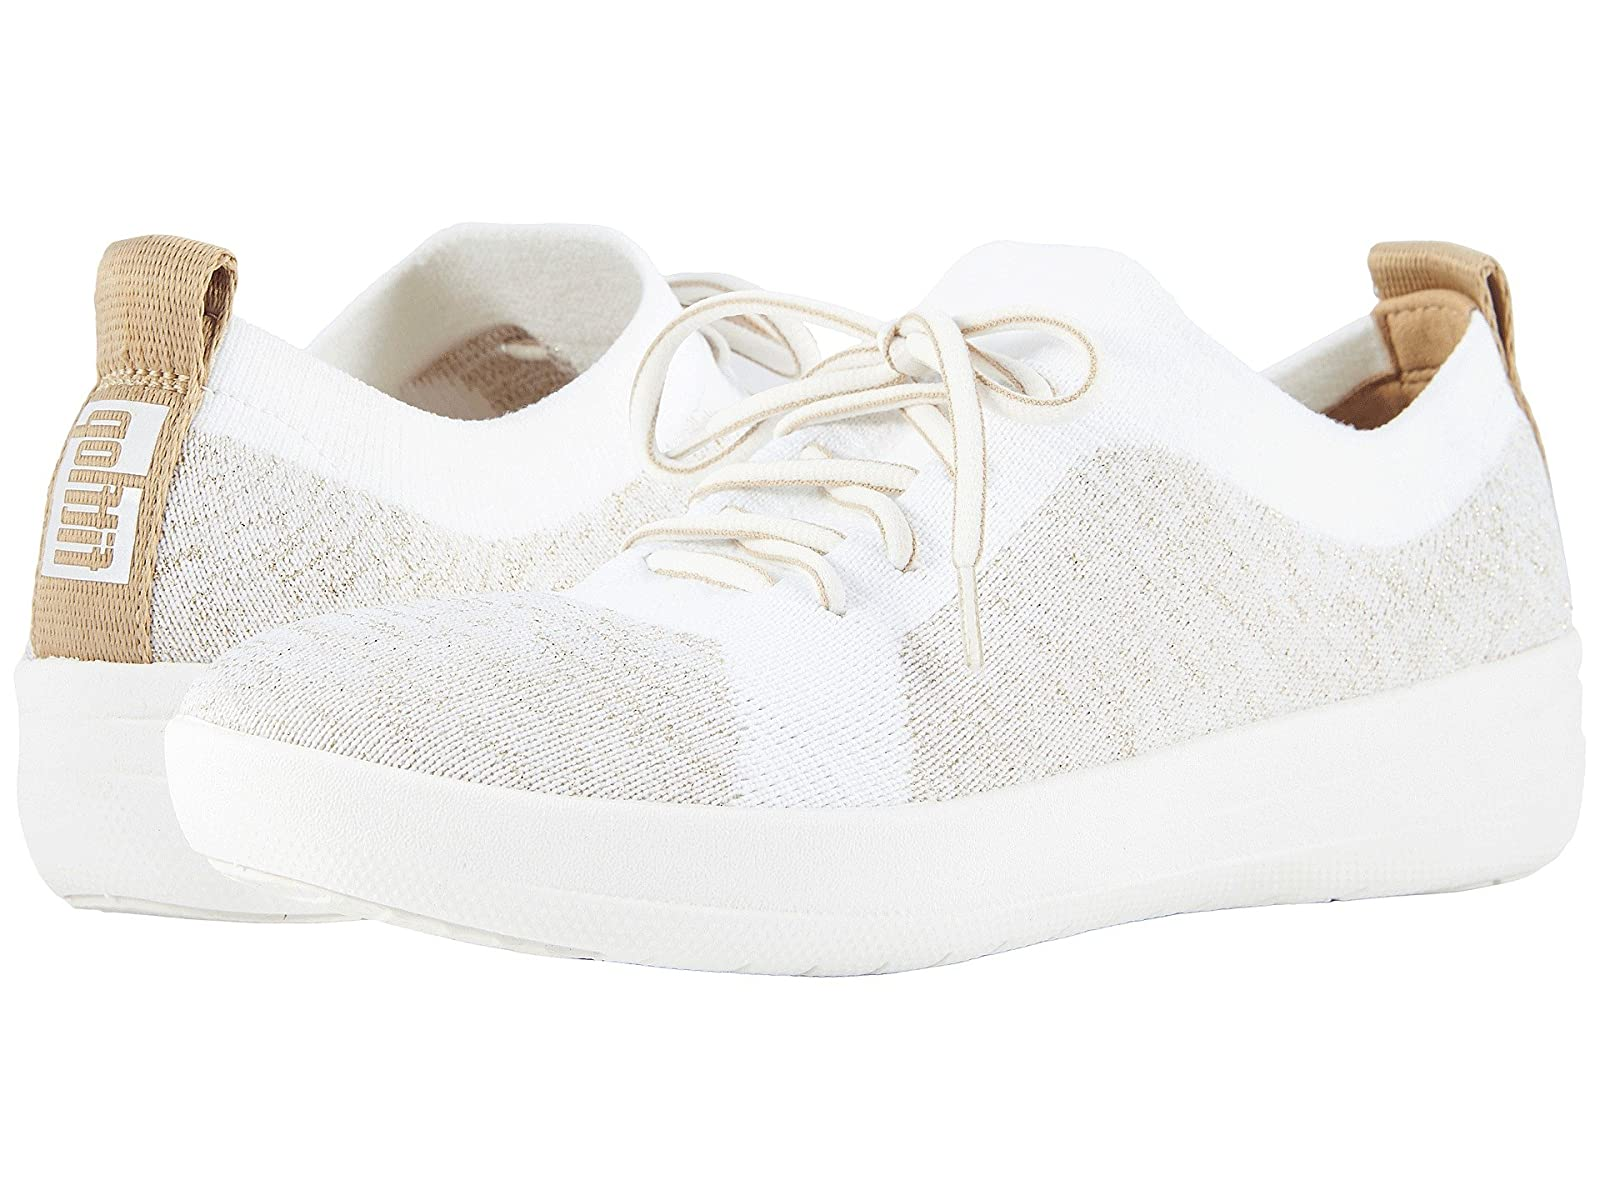 FitFlop F-Sporty Uberknit SneakersCheap and distinctive eye-catching shoes